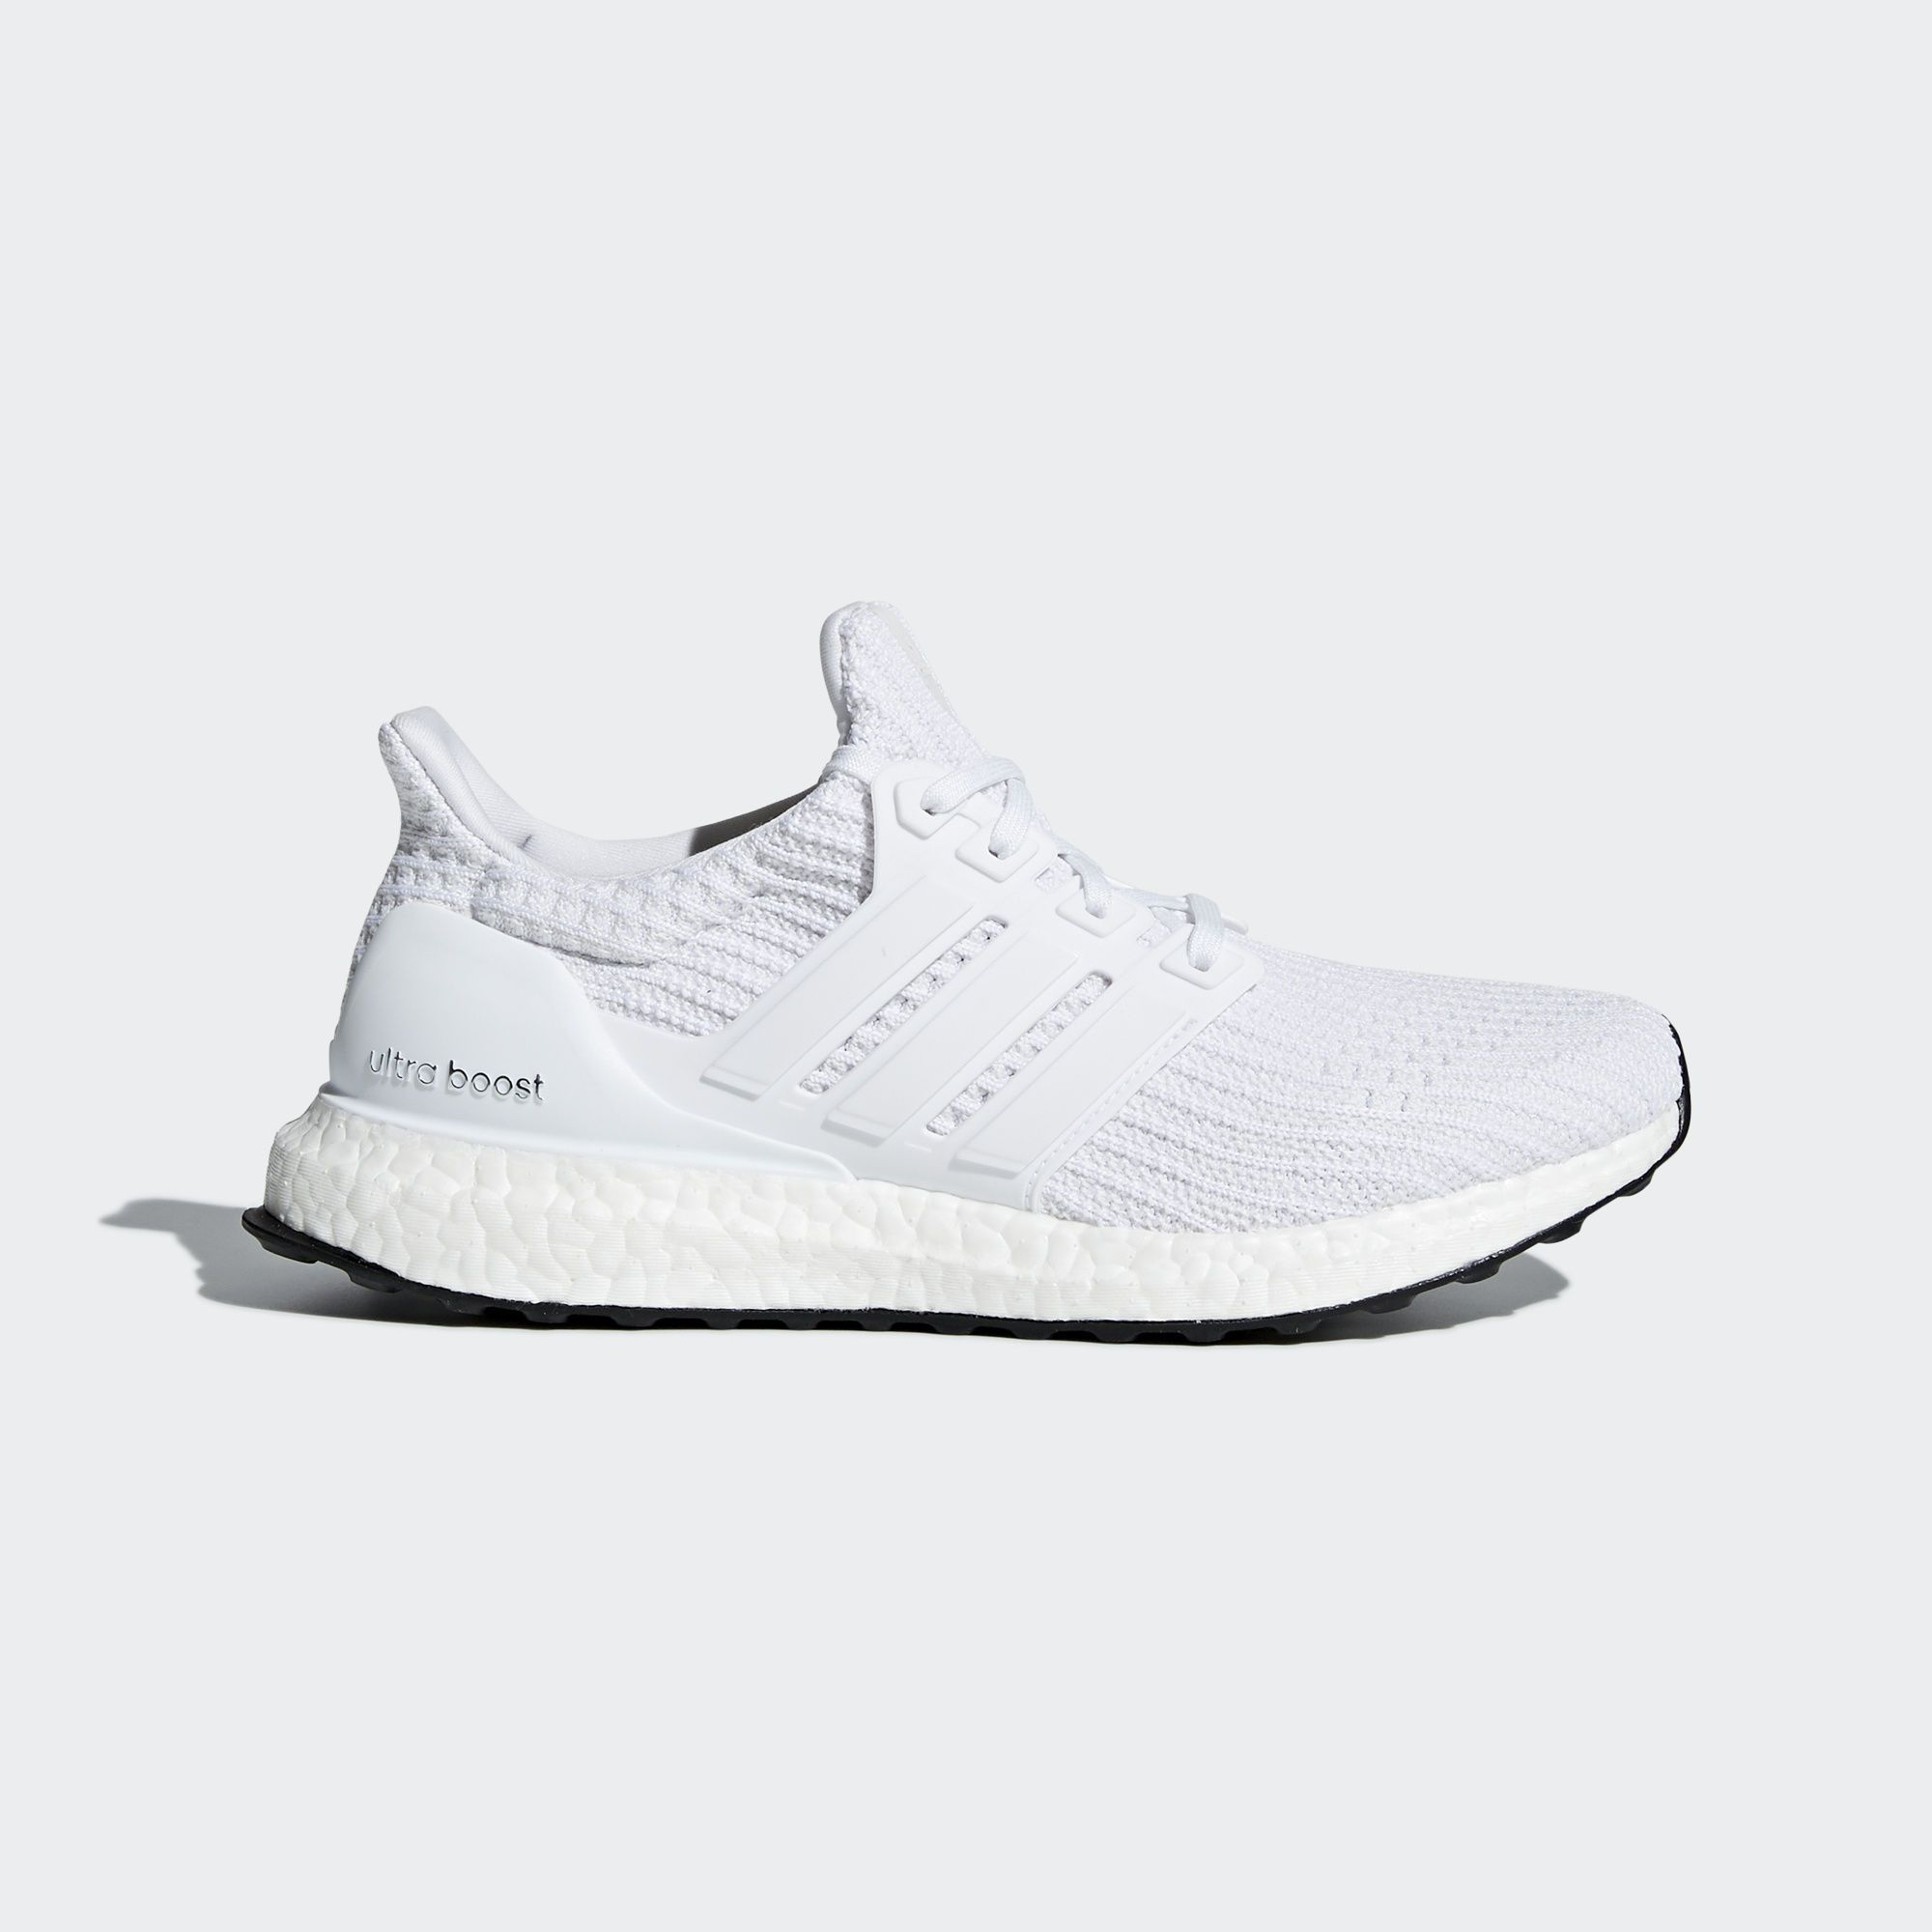 adidas Ultraboost Shoes - White